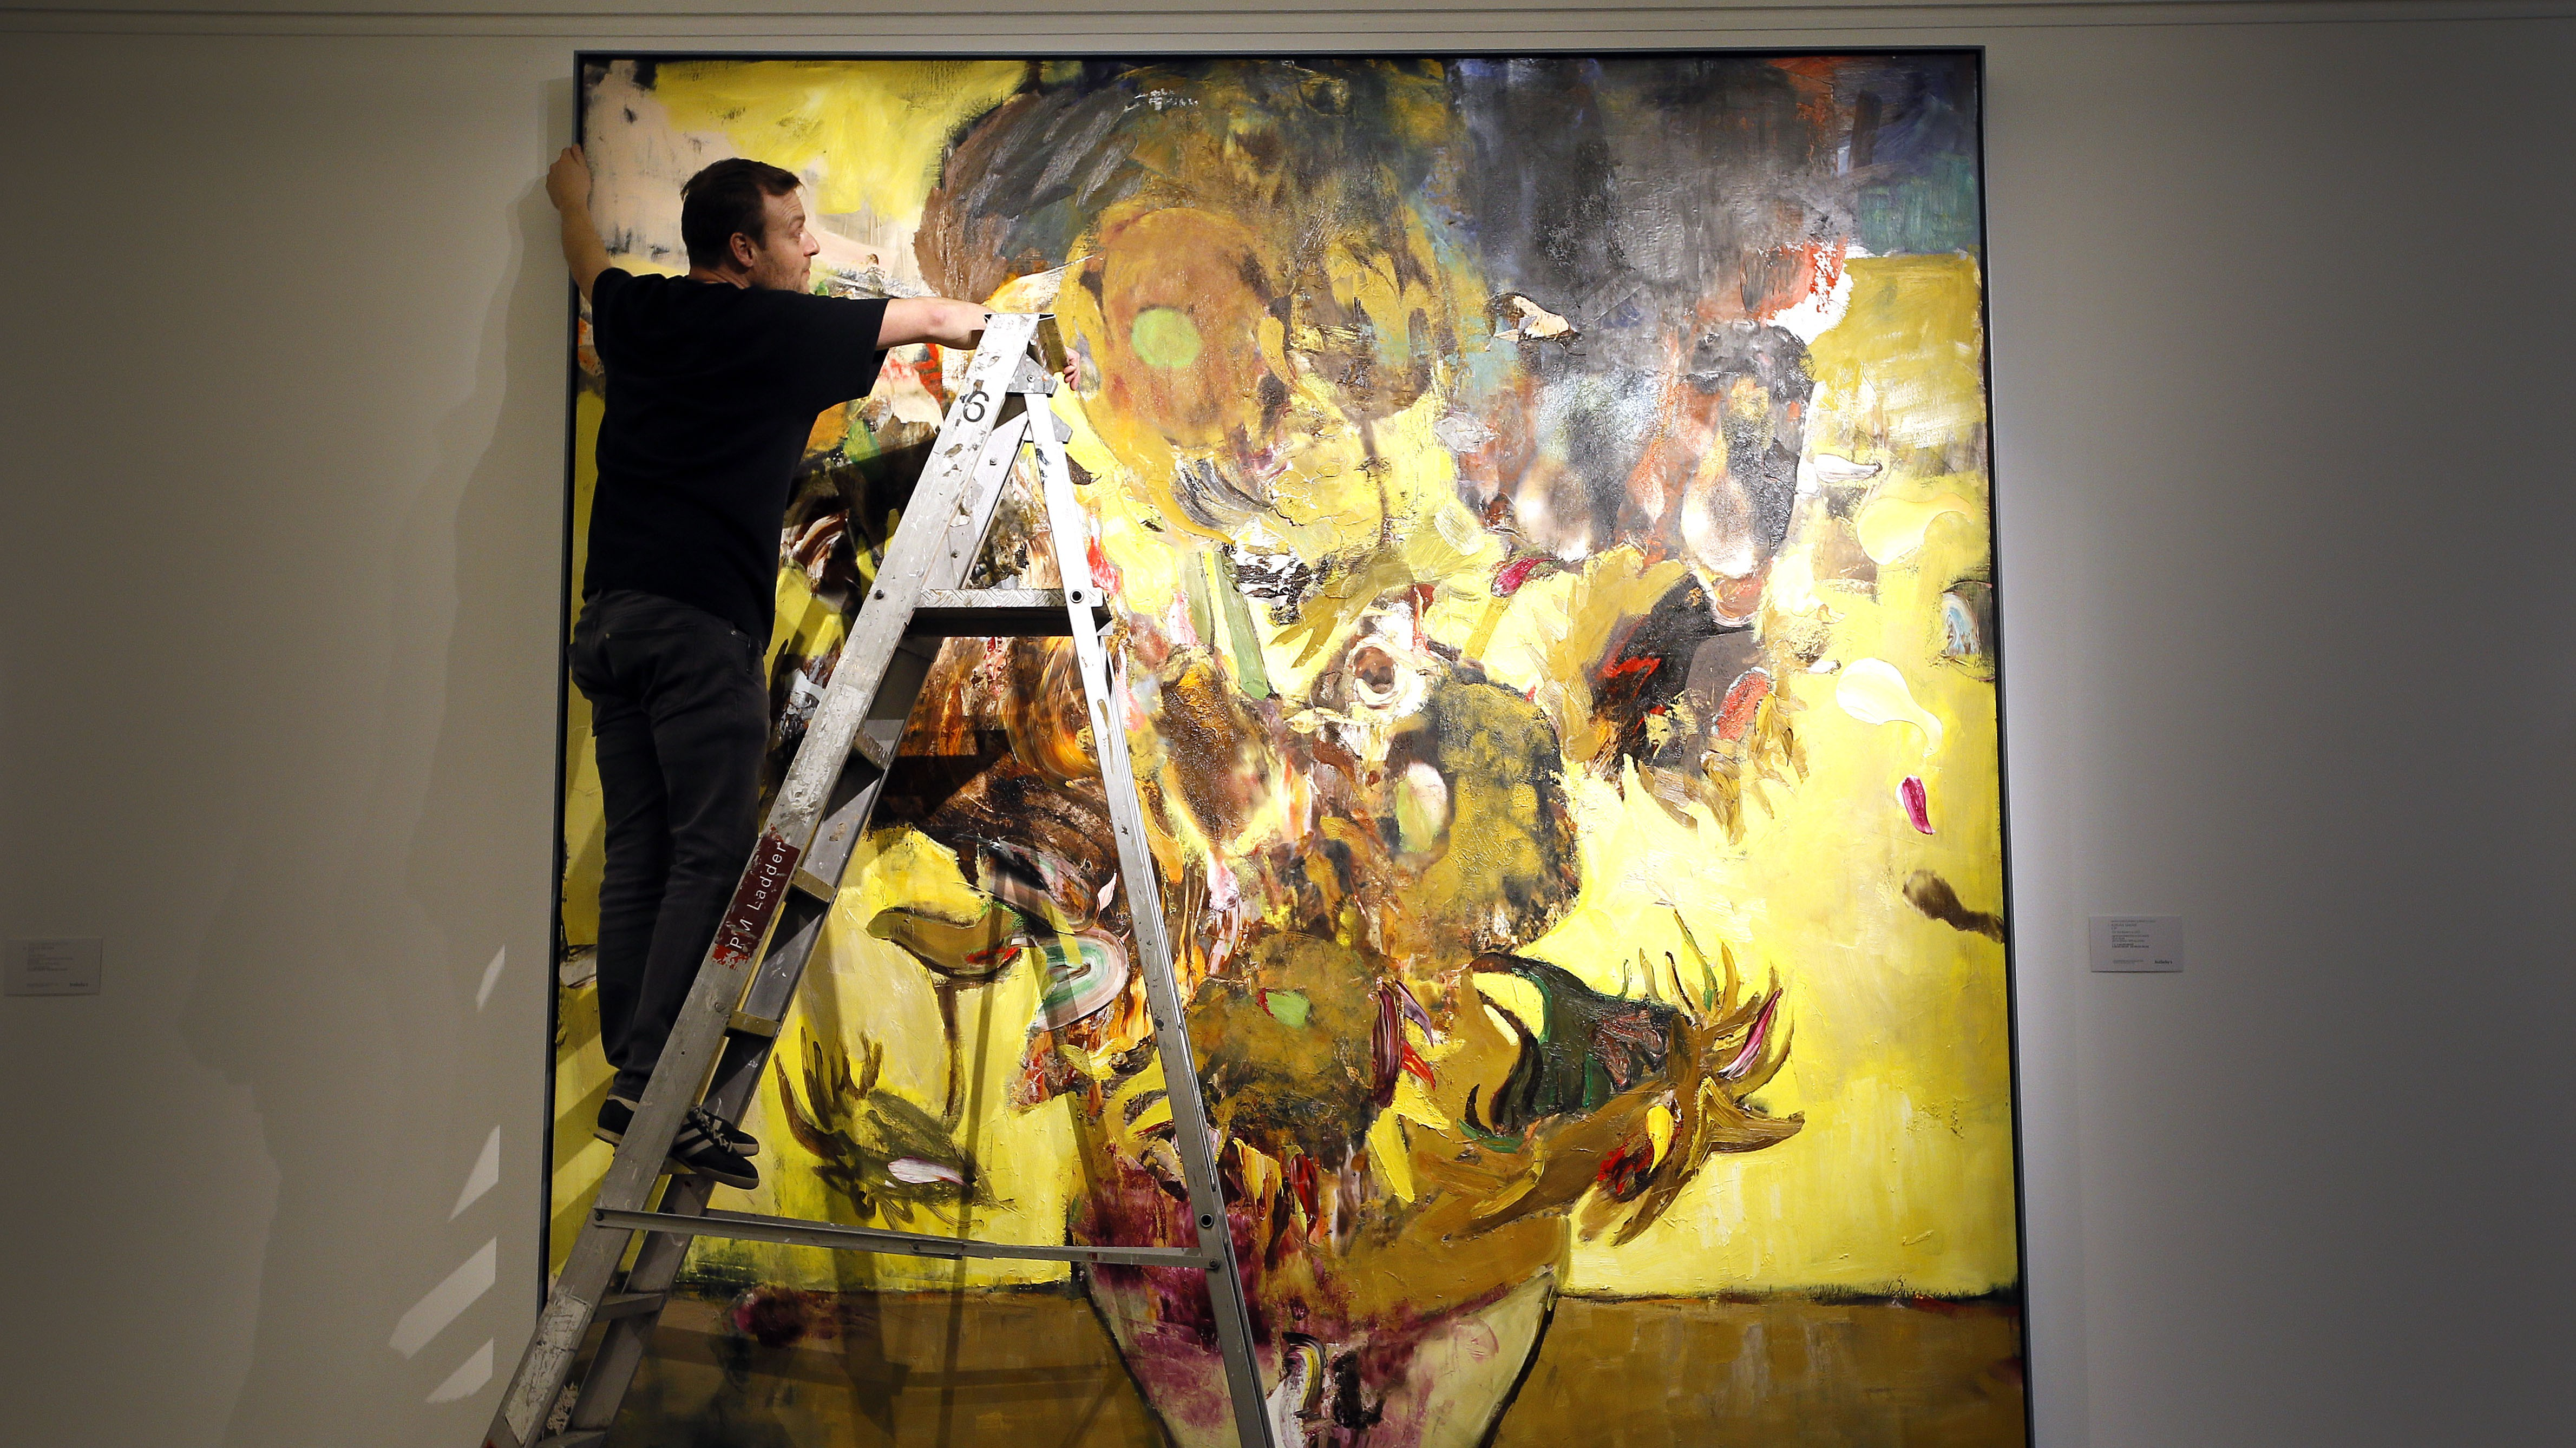 A Sotheby's employee adjusts a painting by Adrien Ghenie called 'The Sunflowers in 1937' at the auction rooms in London, Thursday, Jan. 28, 2016. The painting is estimated at 400,000-600,000 UK pounds (572,000-858,000 US dollars) when it goes up for auction in London on Feb.10 in the Contemporary Art Evening Sale.